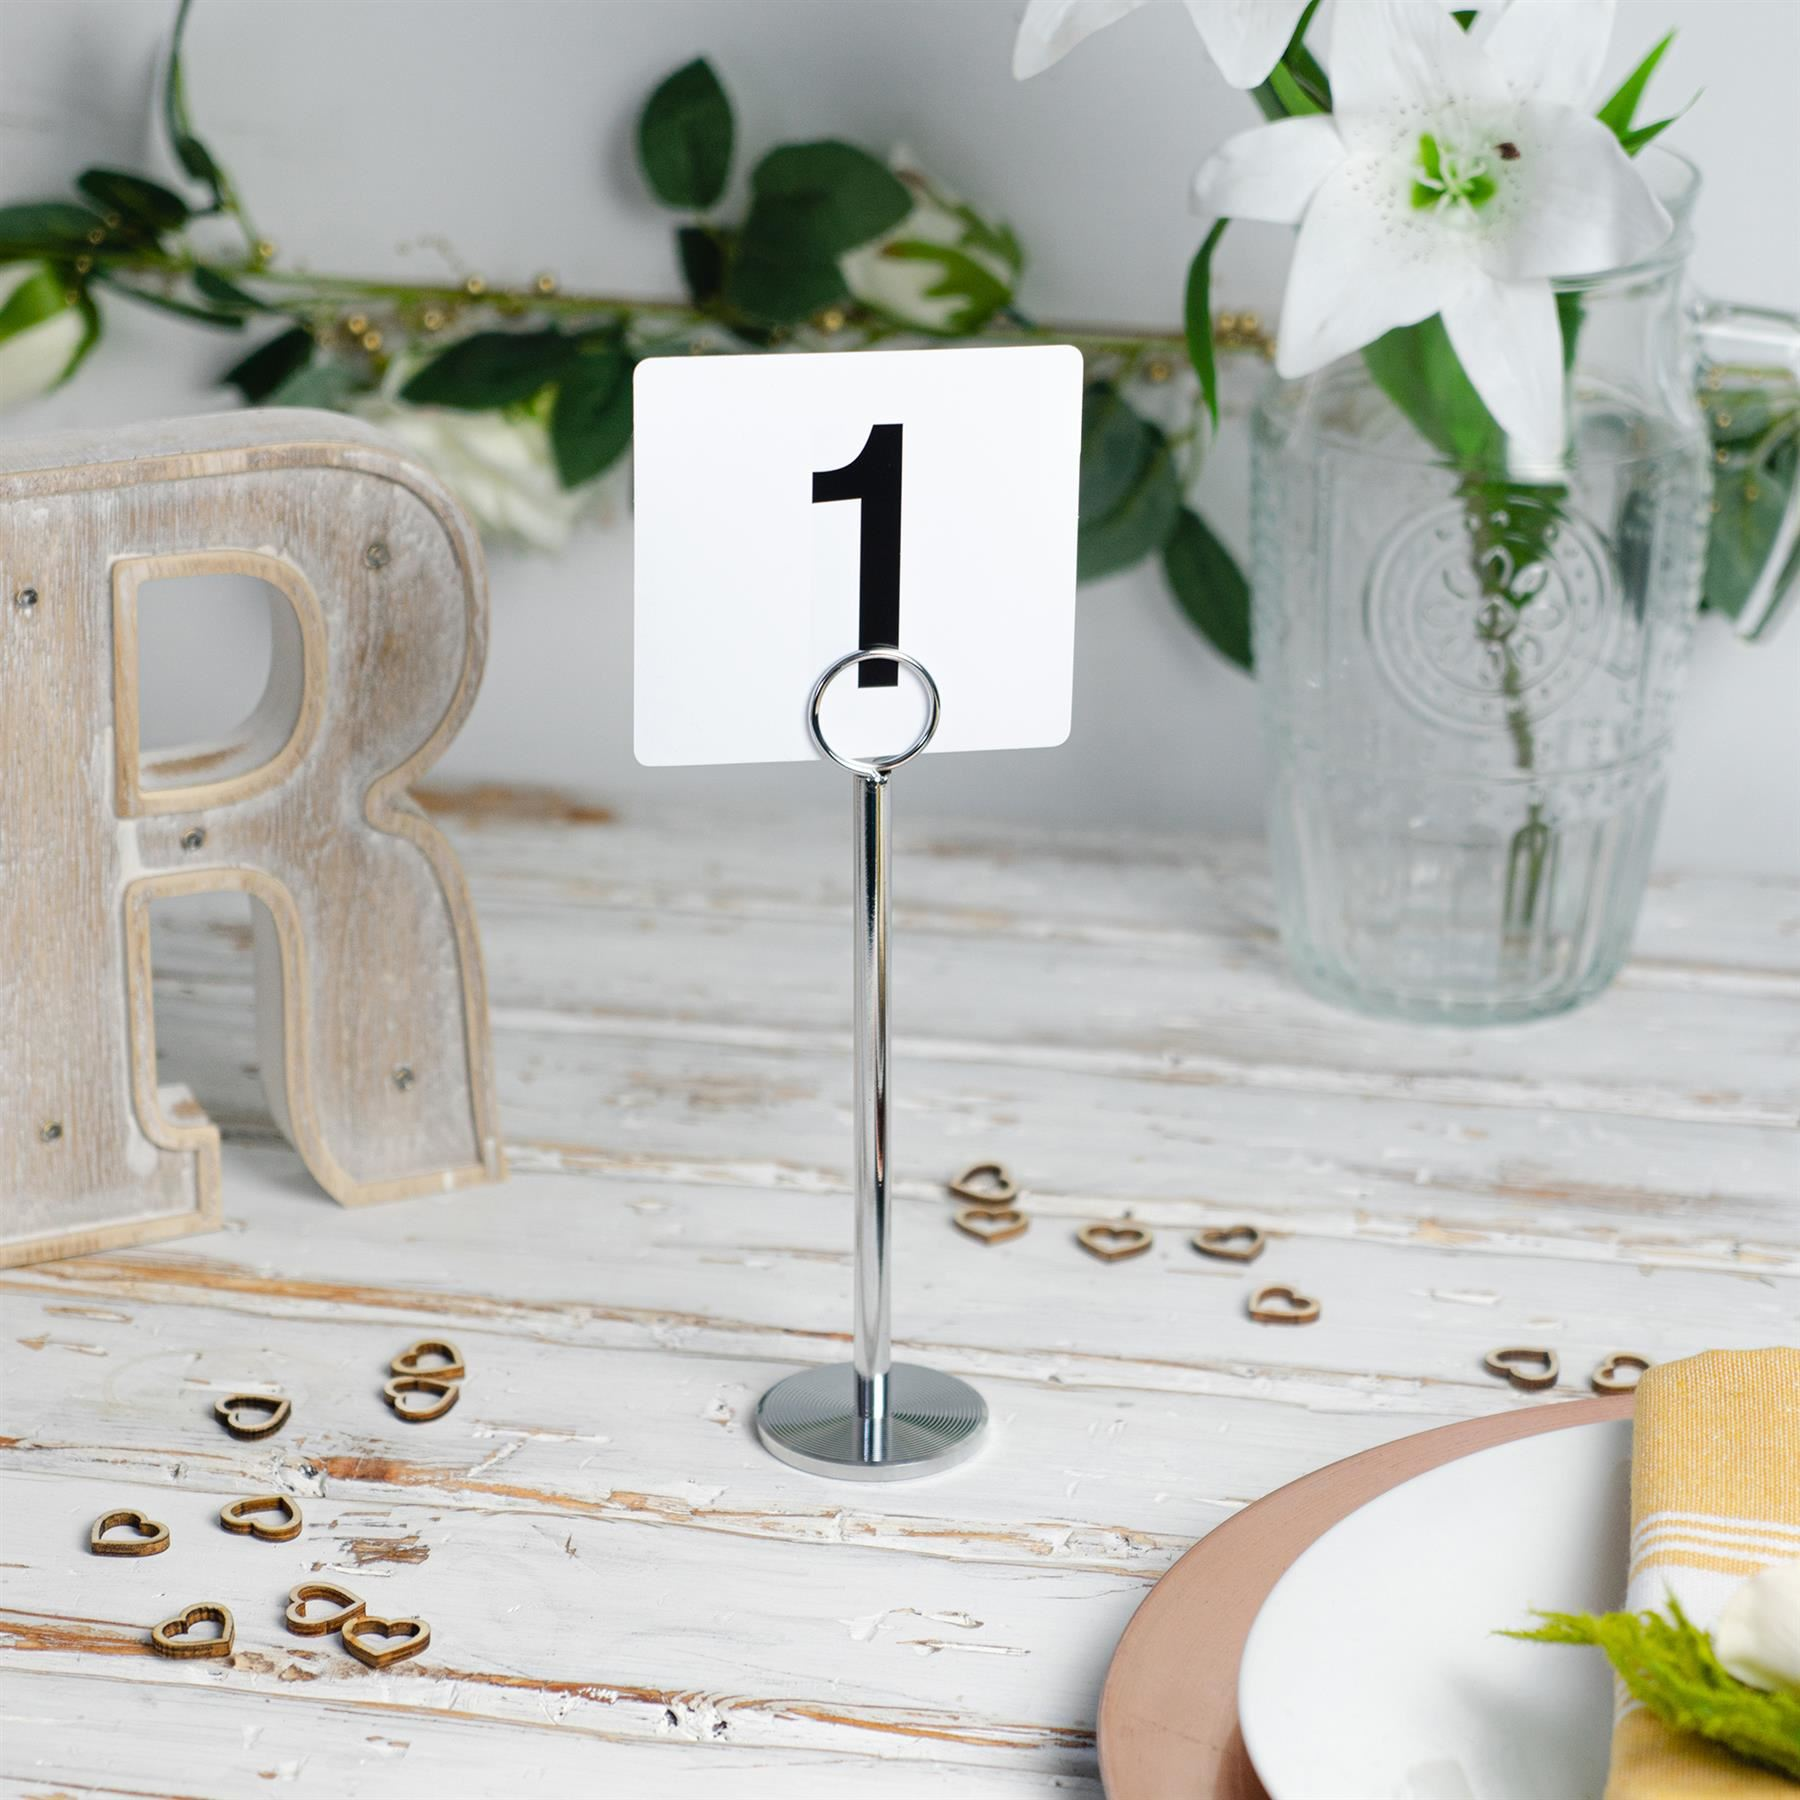 Wedding-Event-Party-Table-Number-Plastic-Place-Cards-Double-sided thumbnail 10